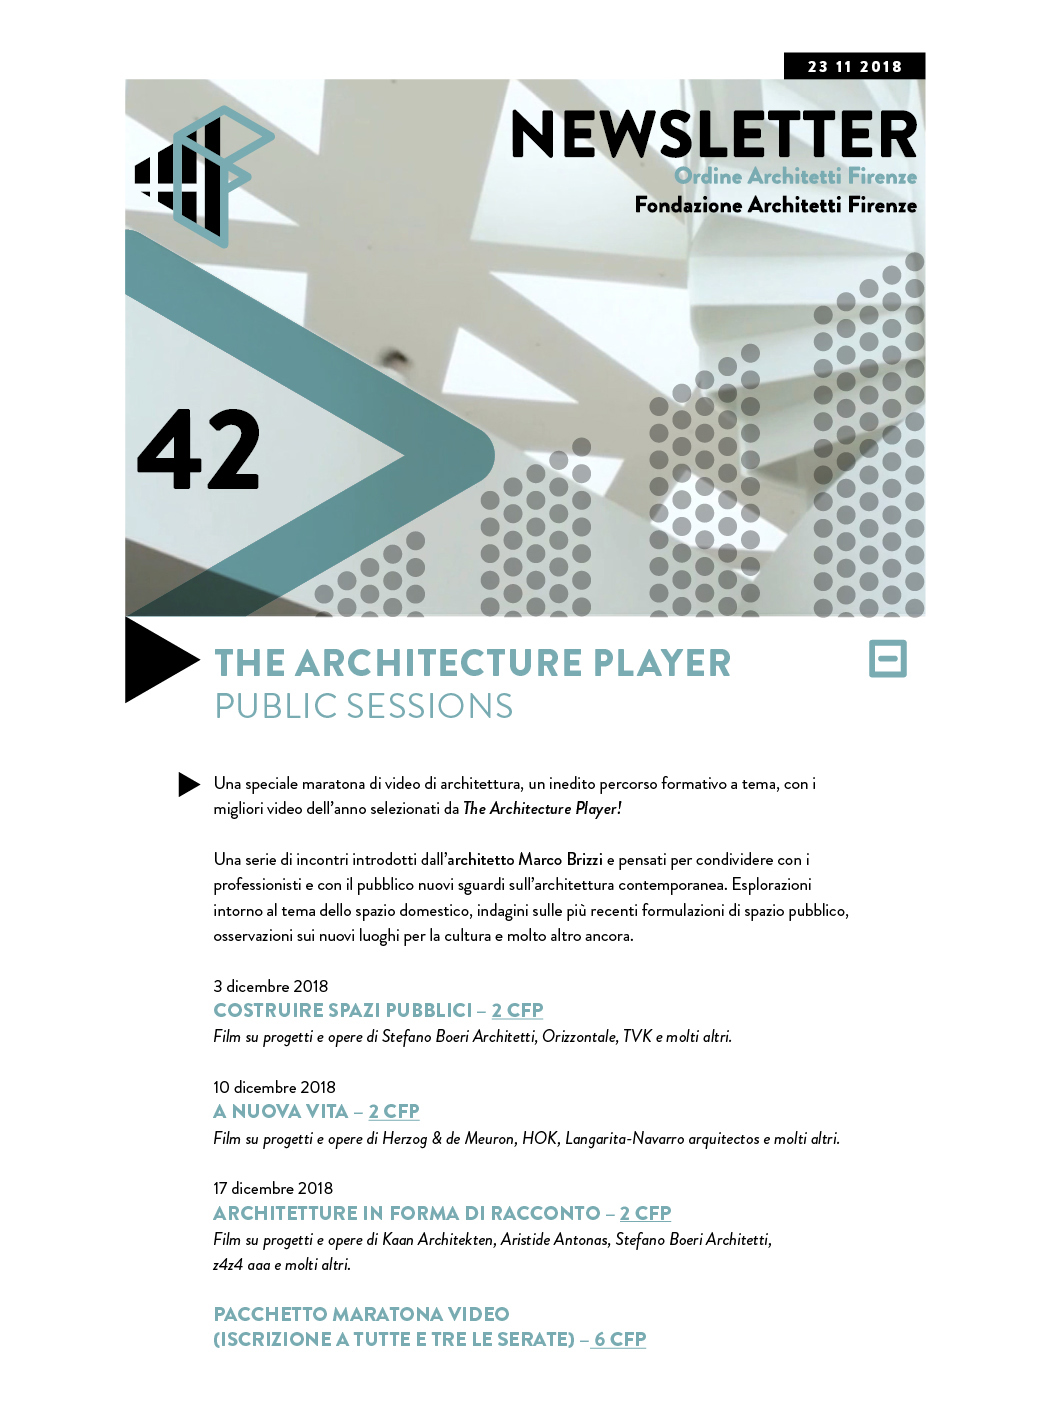 THE ARCHITECTURE PLAYER PUBLIC SESSIONS